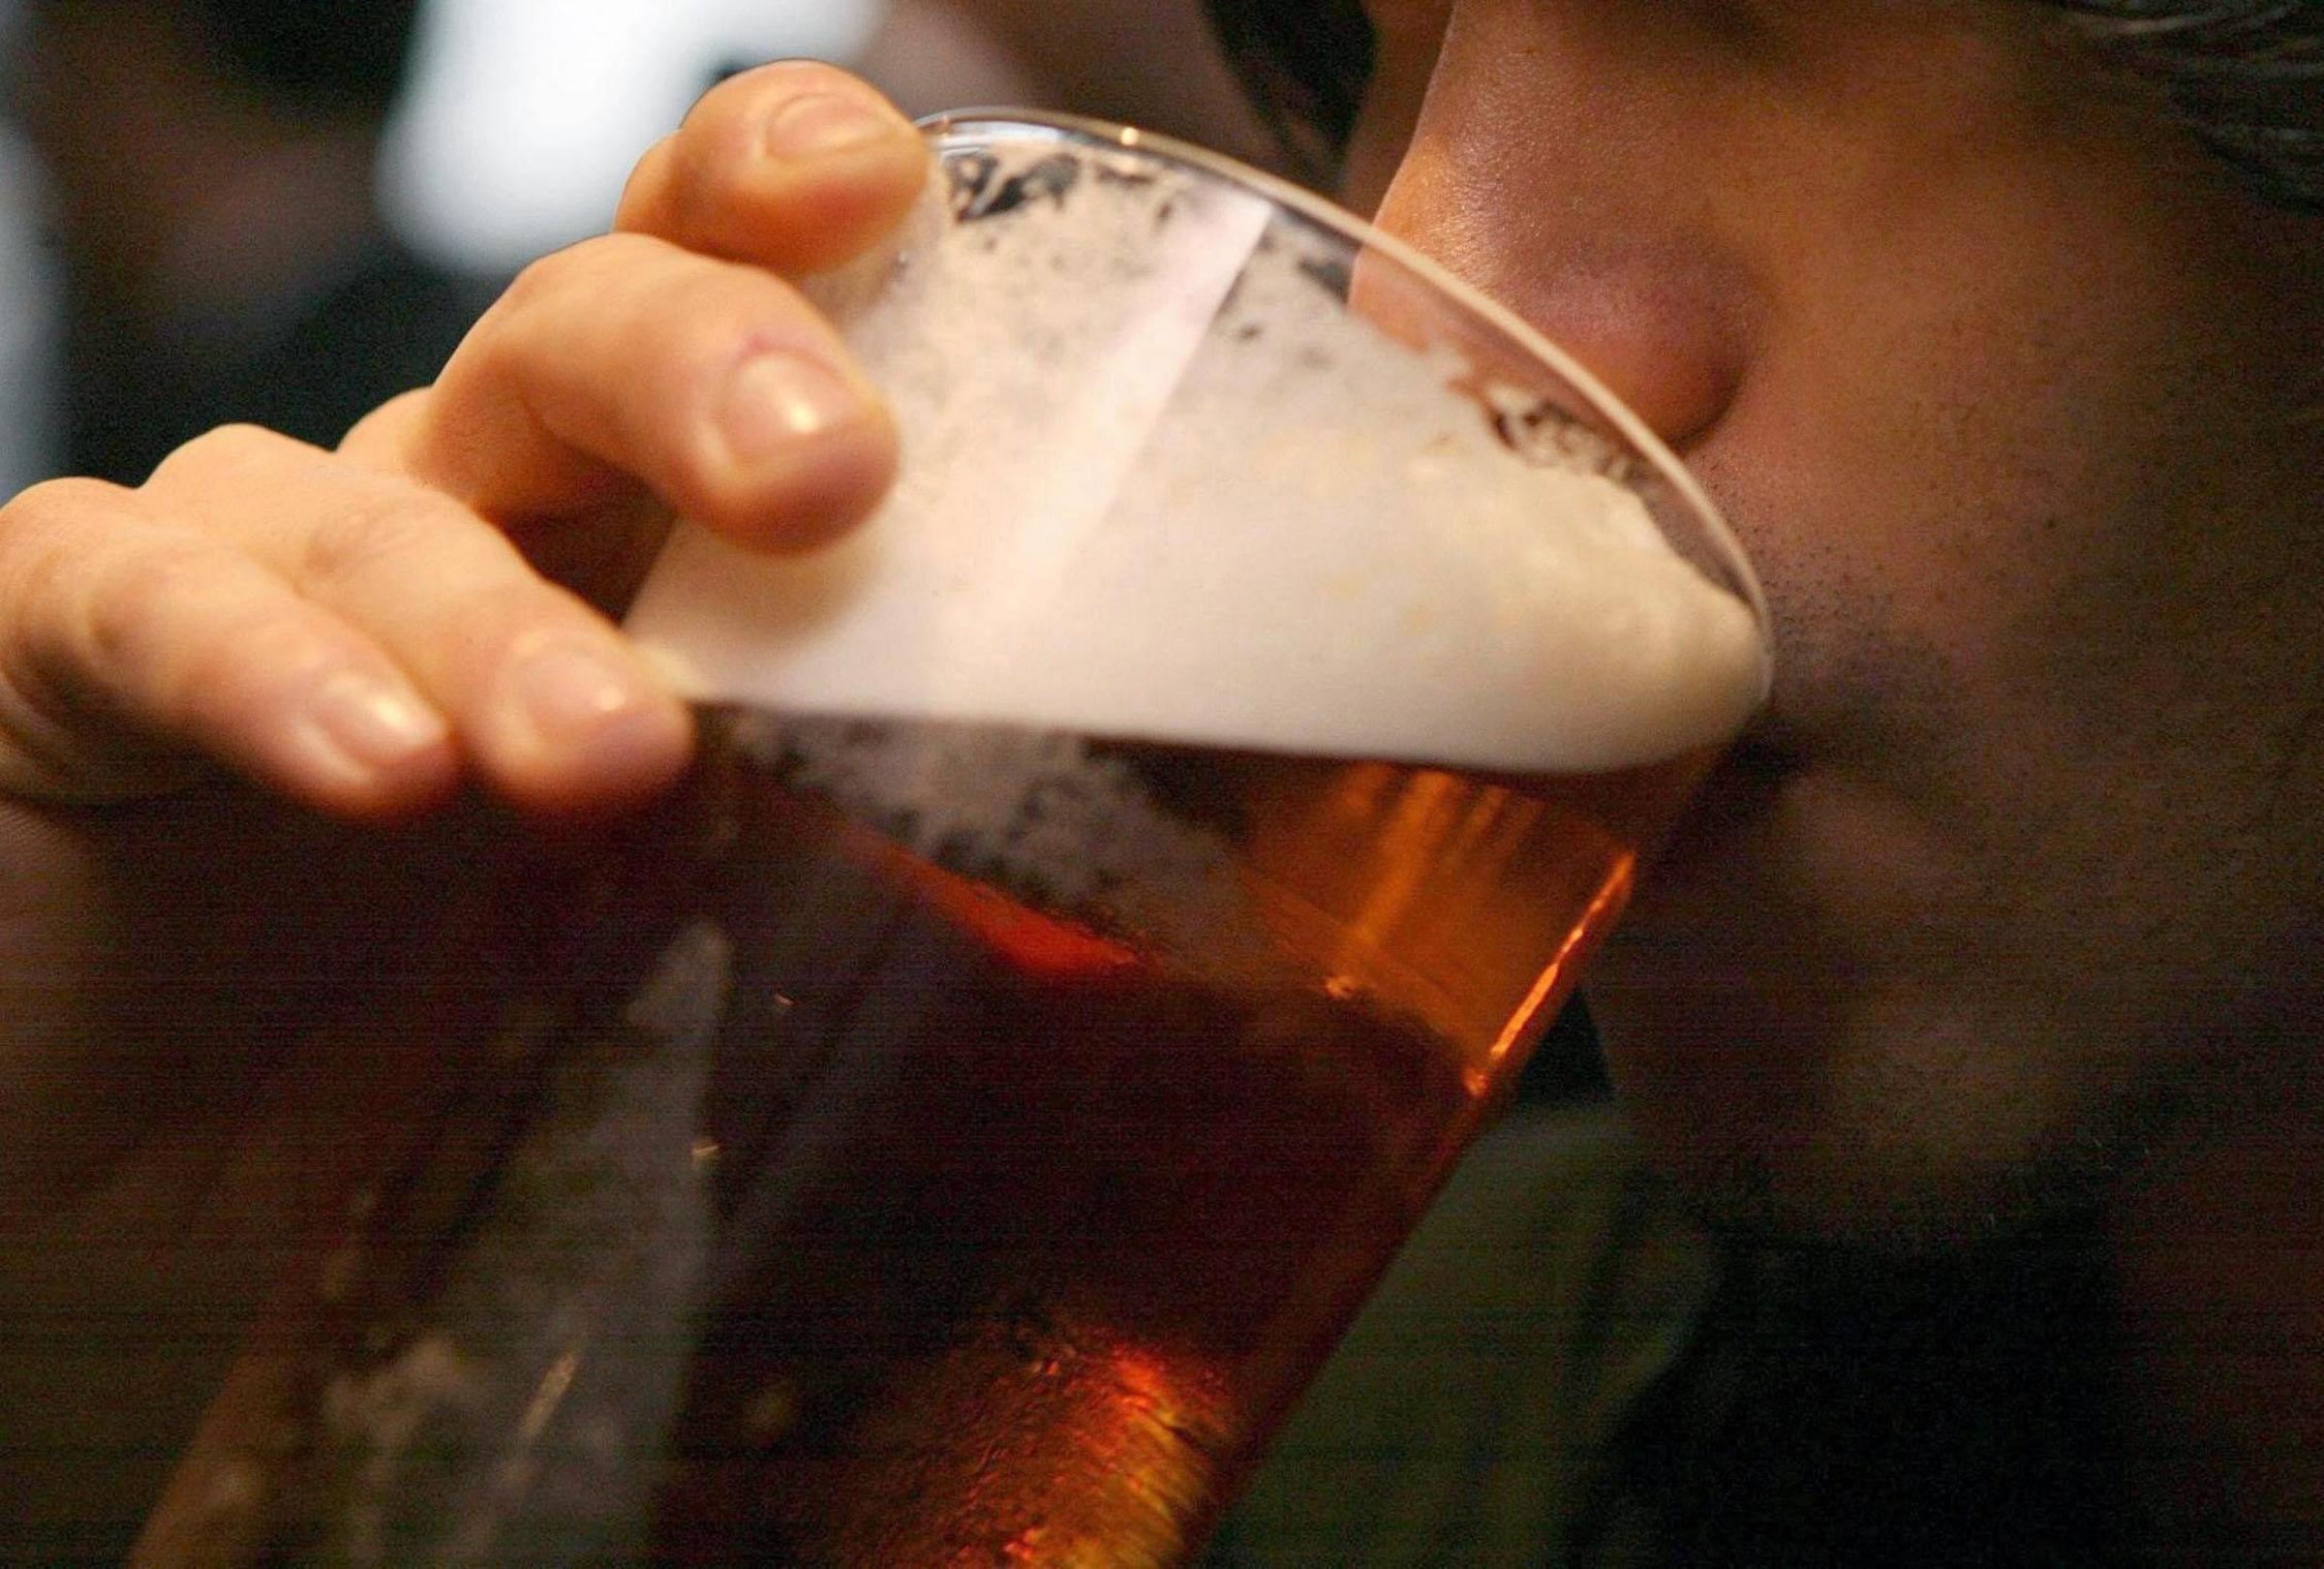 New booze prices plan could 'improve health'